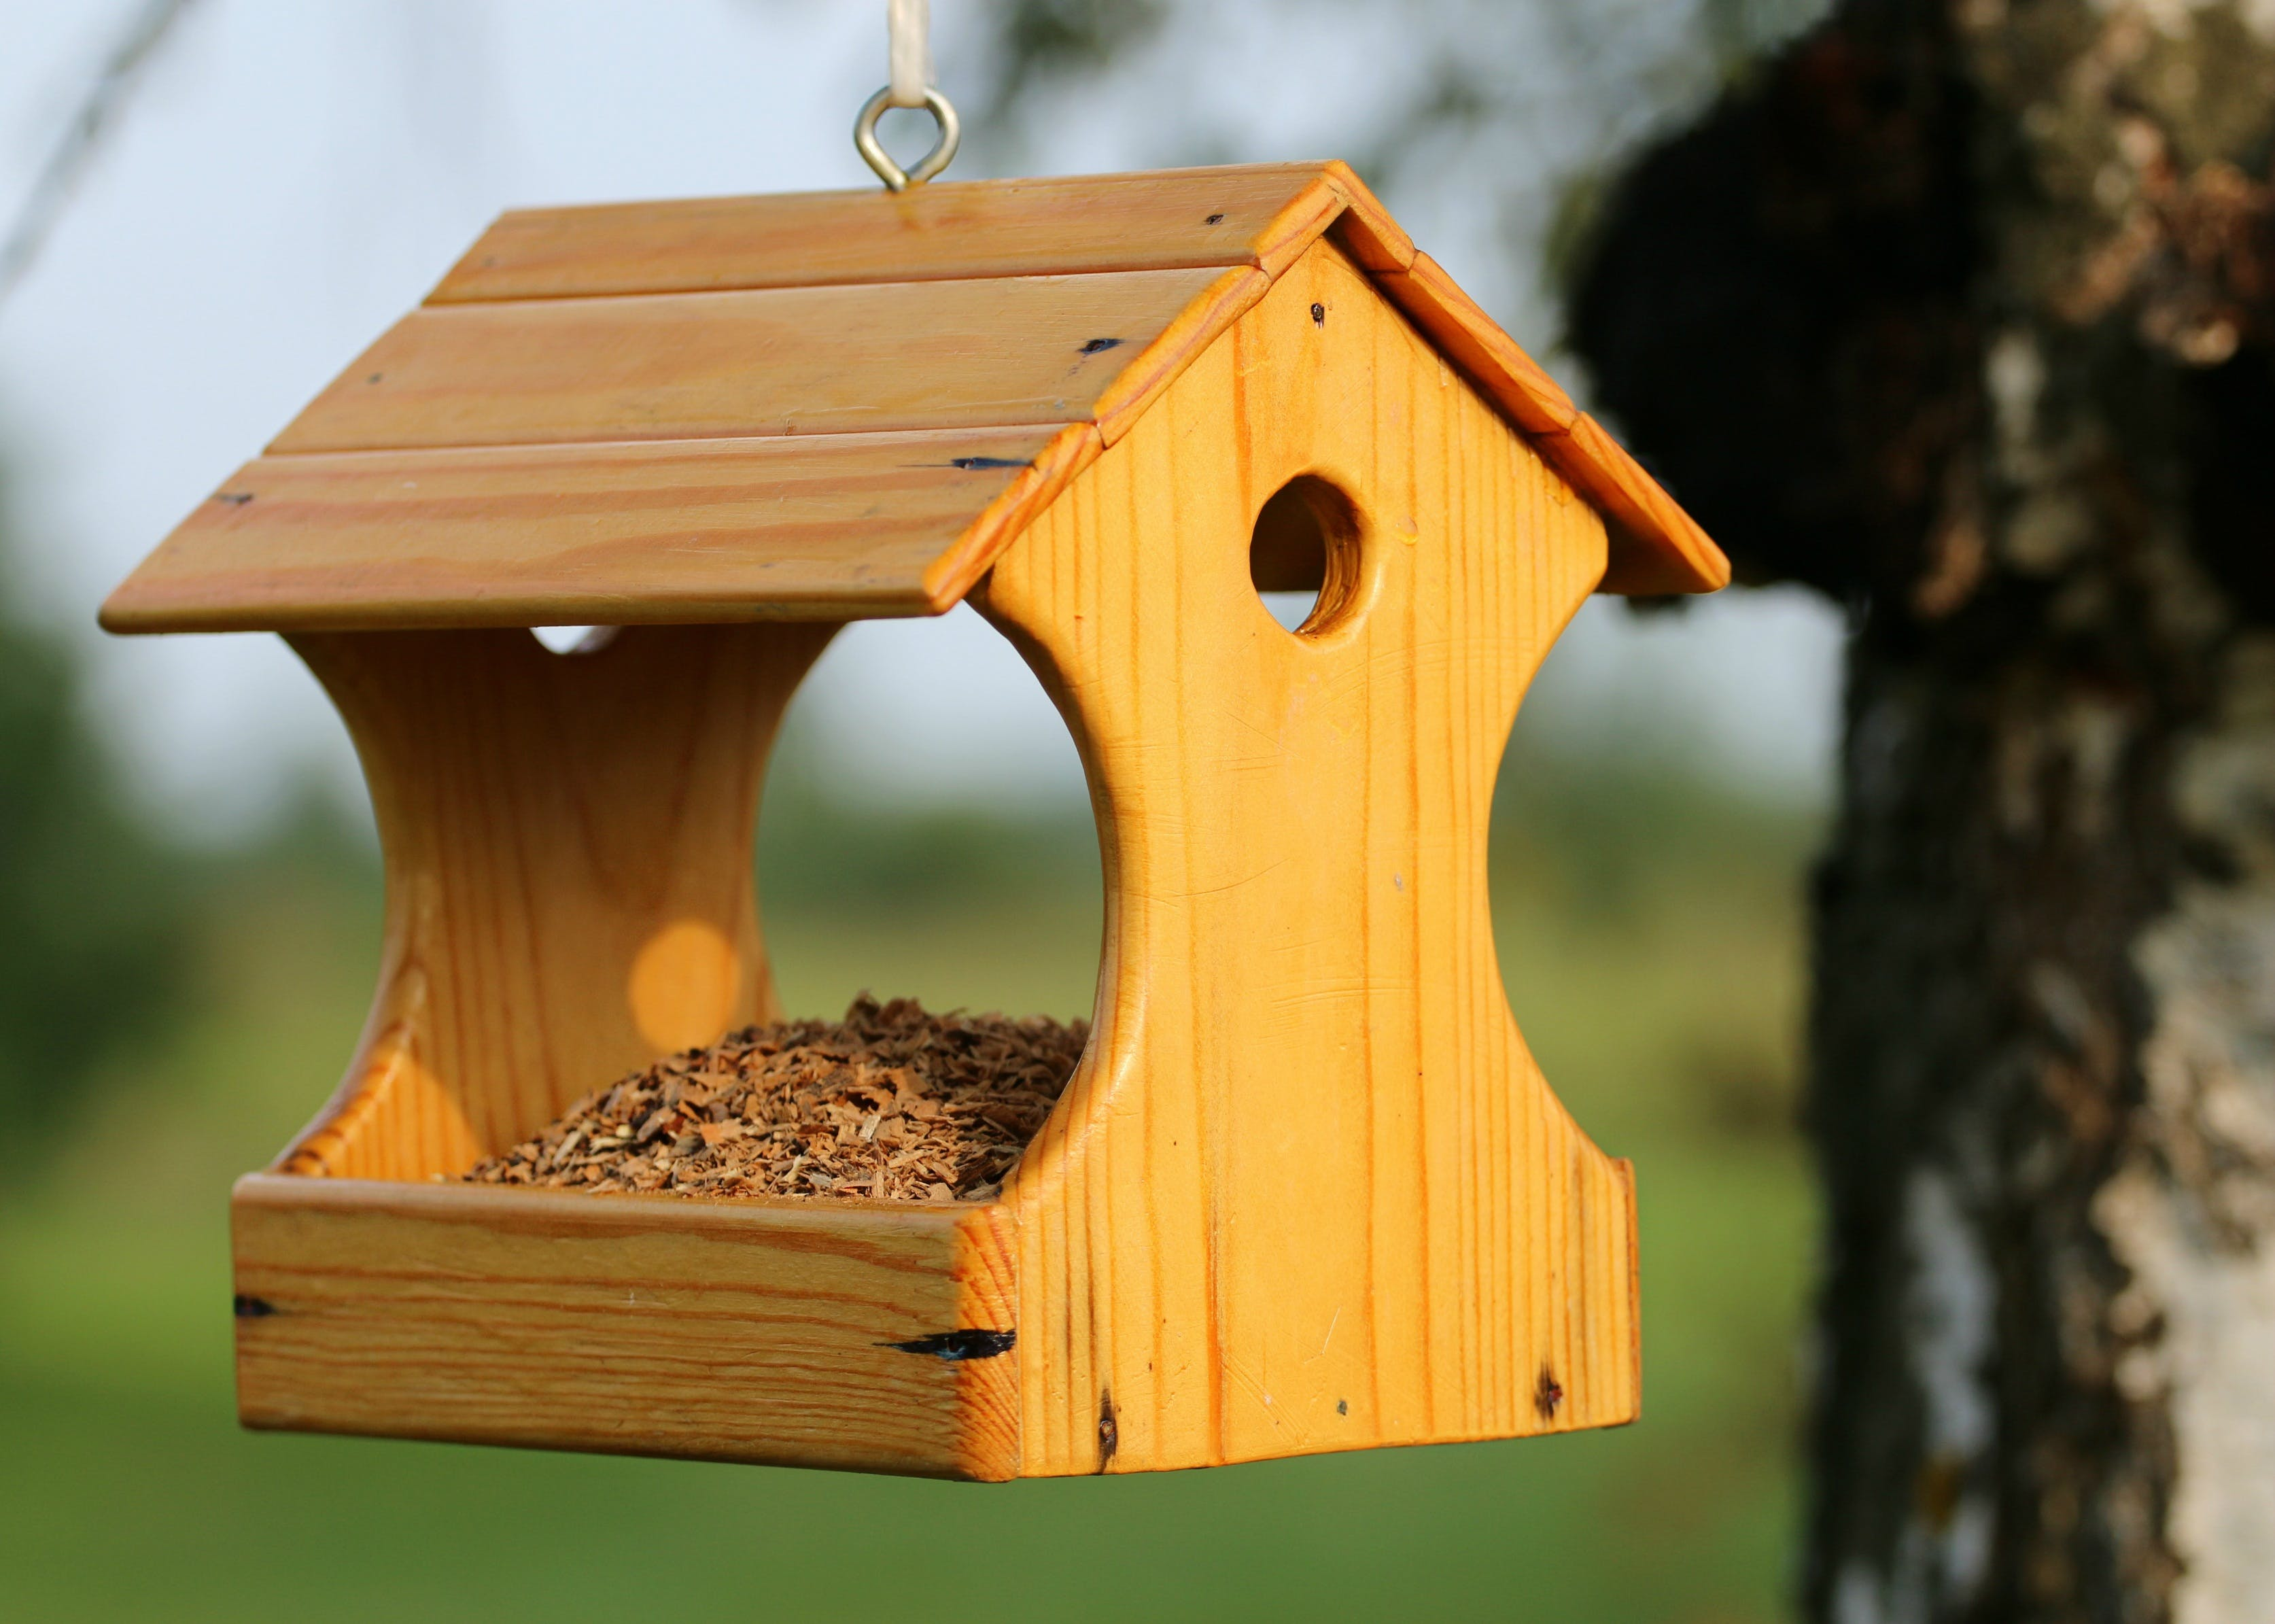 Brown Wooden Bird House Hanging on Tree